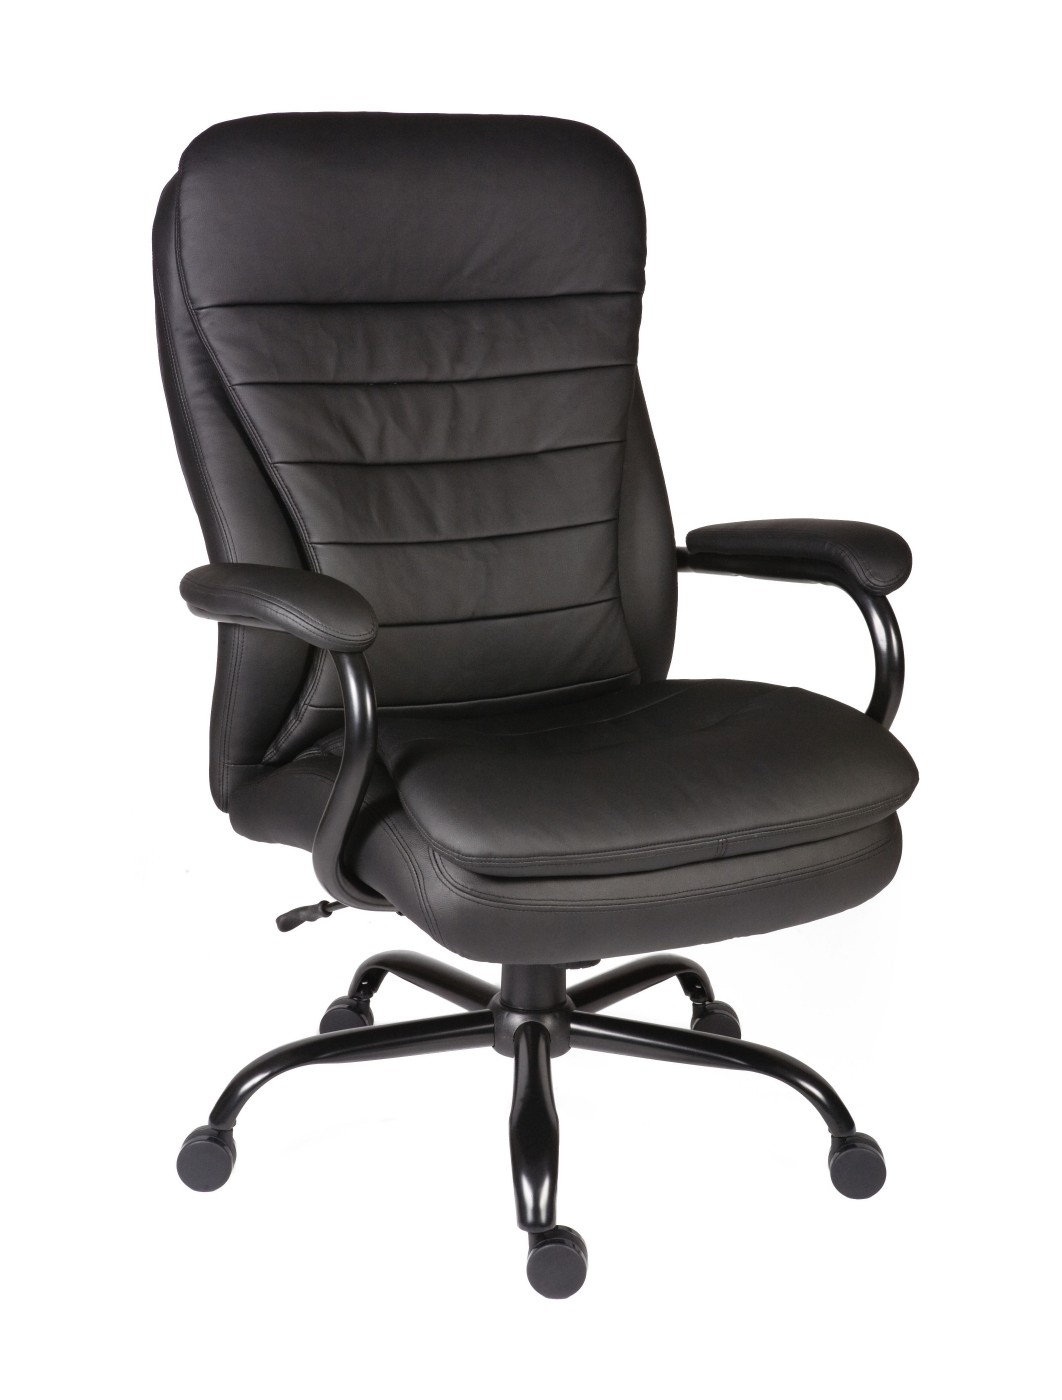 Waffle chair office chairs goliath heavy